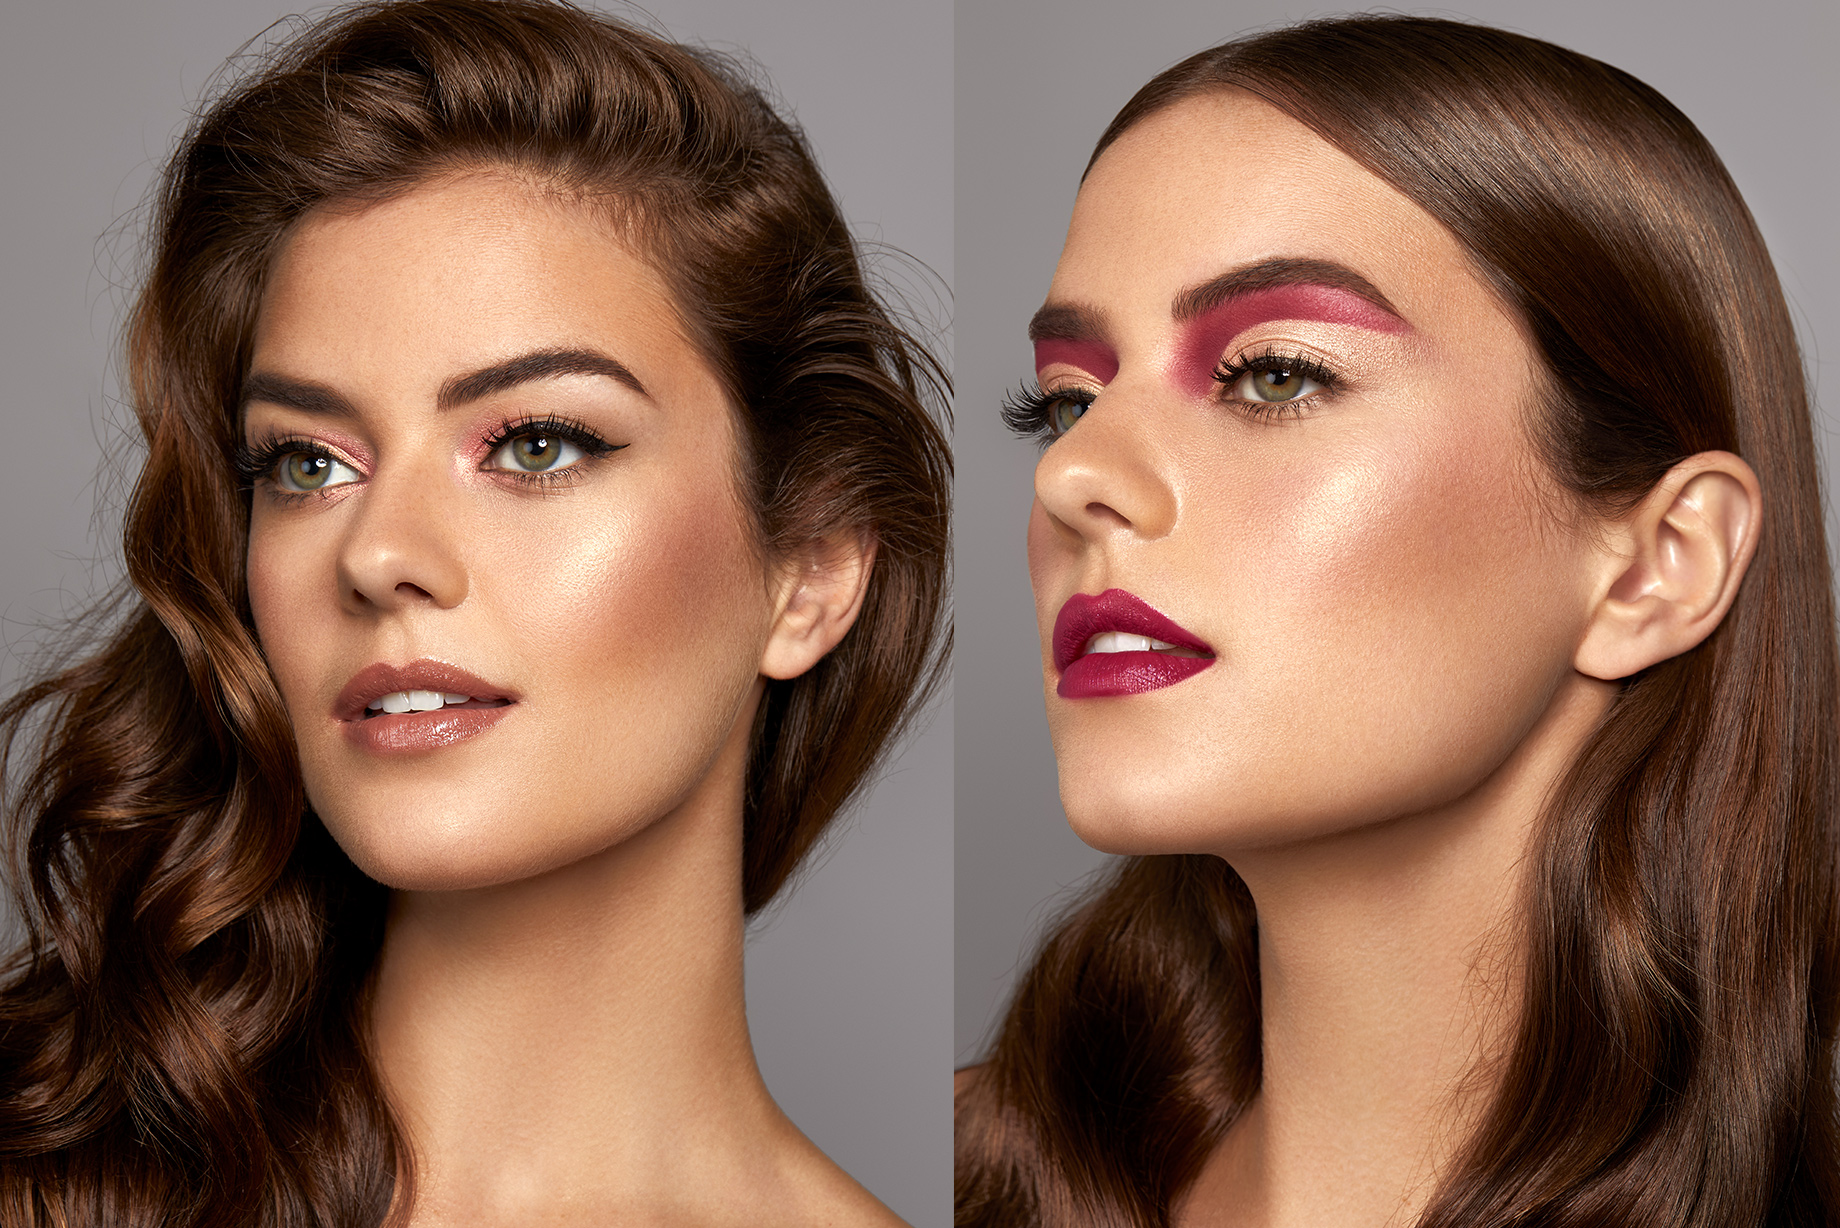 Get The Look: Rose Gold Eyes